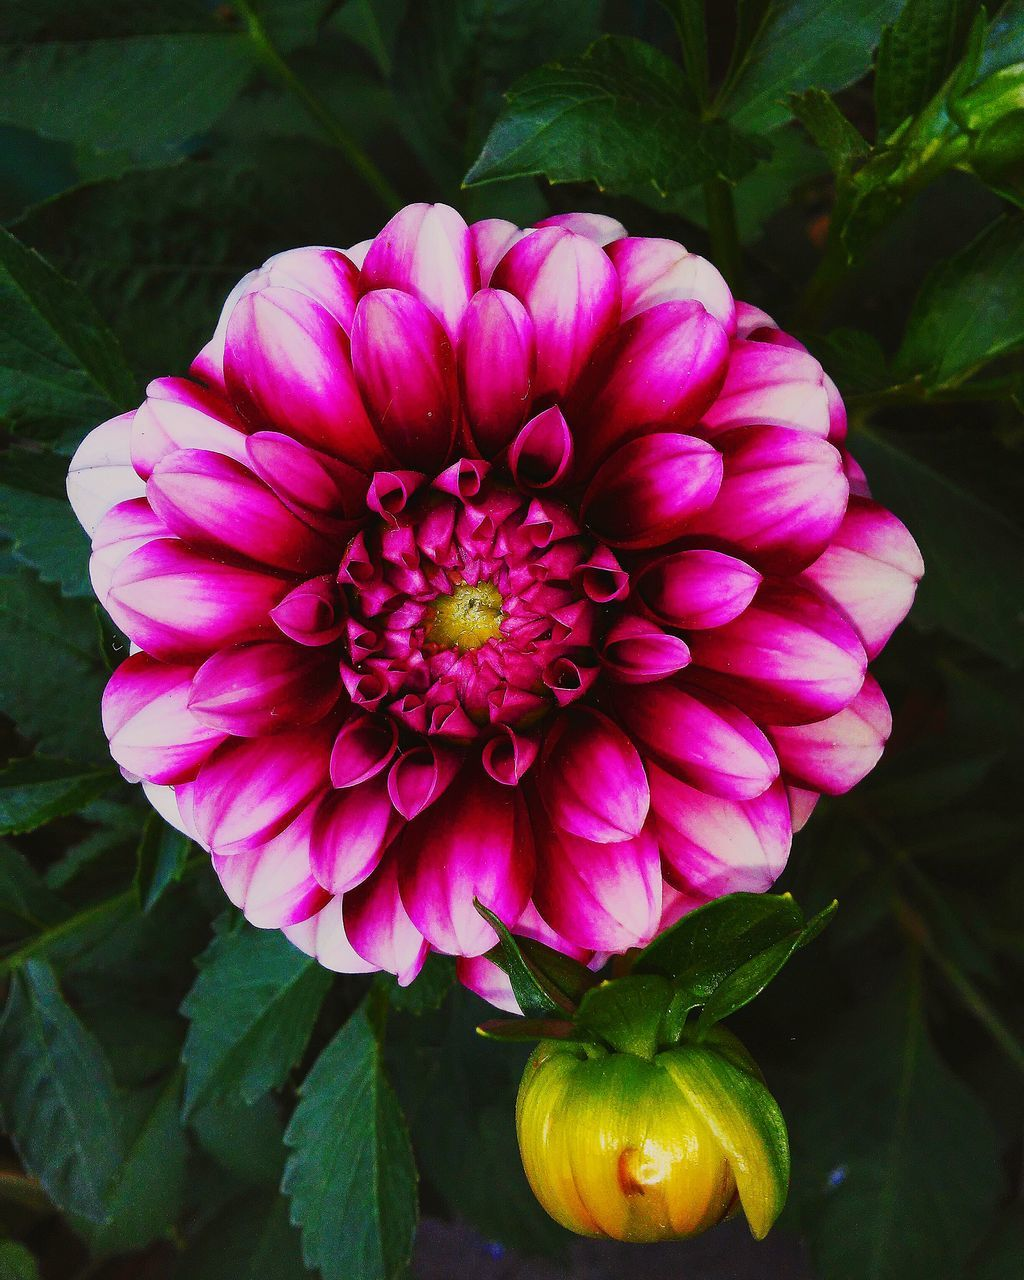 flower, petal, beauty in nature, nature, fragility, growth, flower head, plant, freshness, pink color, no people, blooming, leaf, outdoors, dahlia, day, close-up